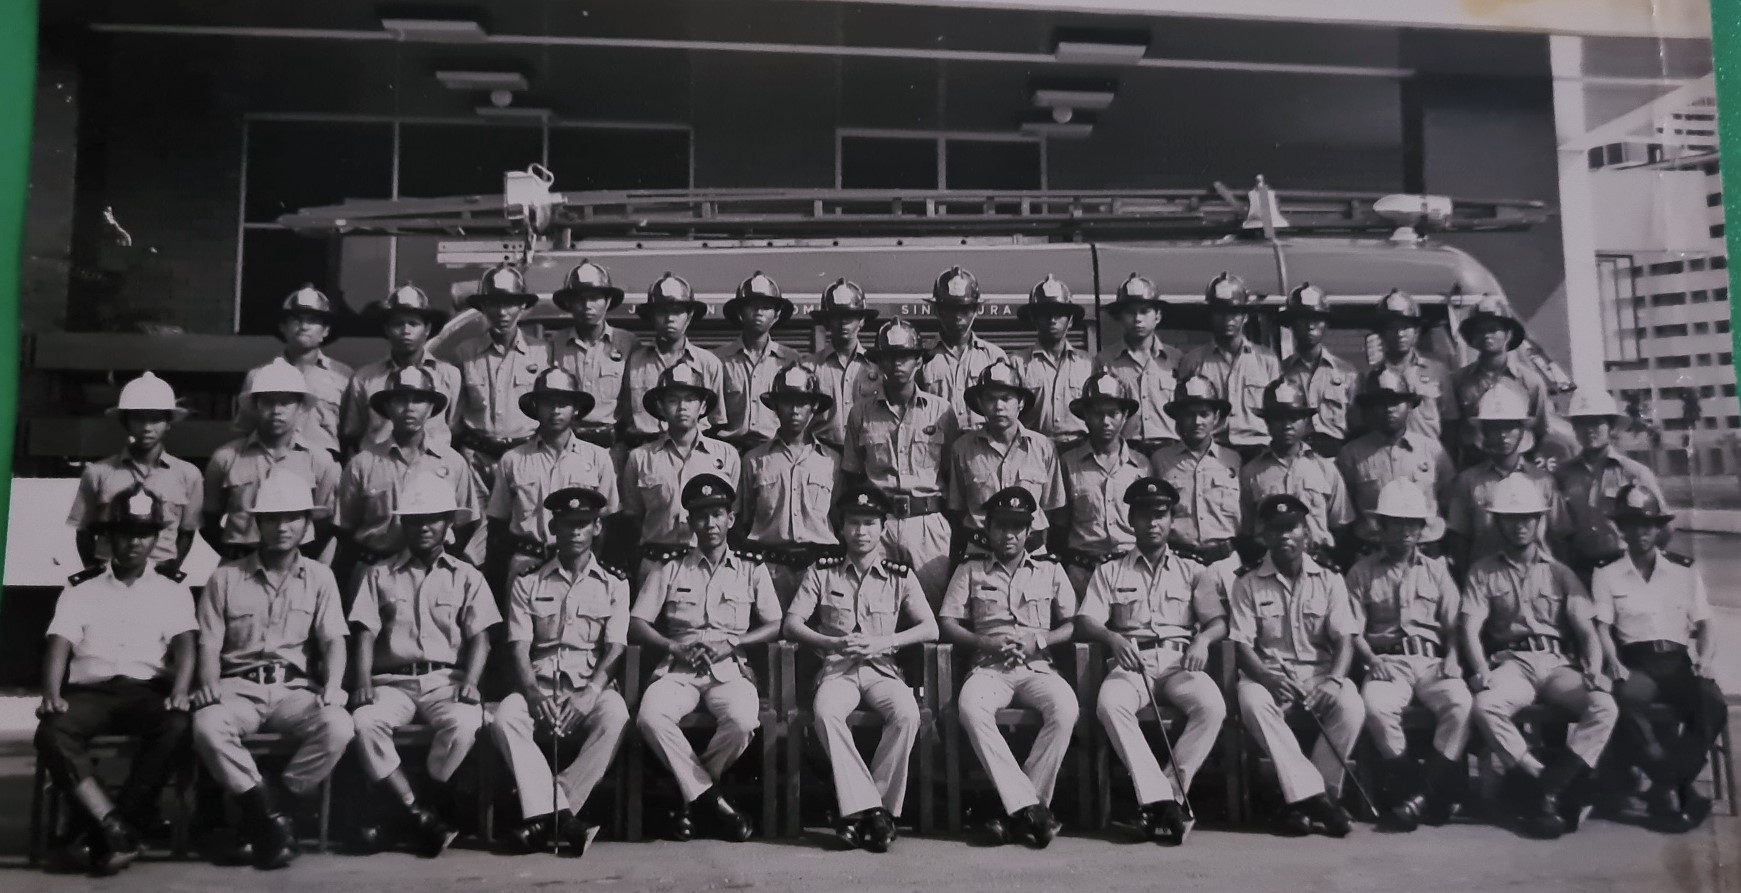 Recruit Md Salleh (second row, fourth person from the left) joined the Singapore Fire Brigade in 1975.